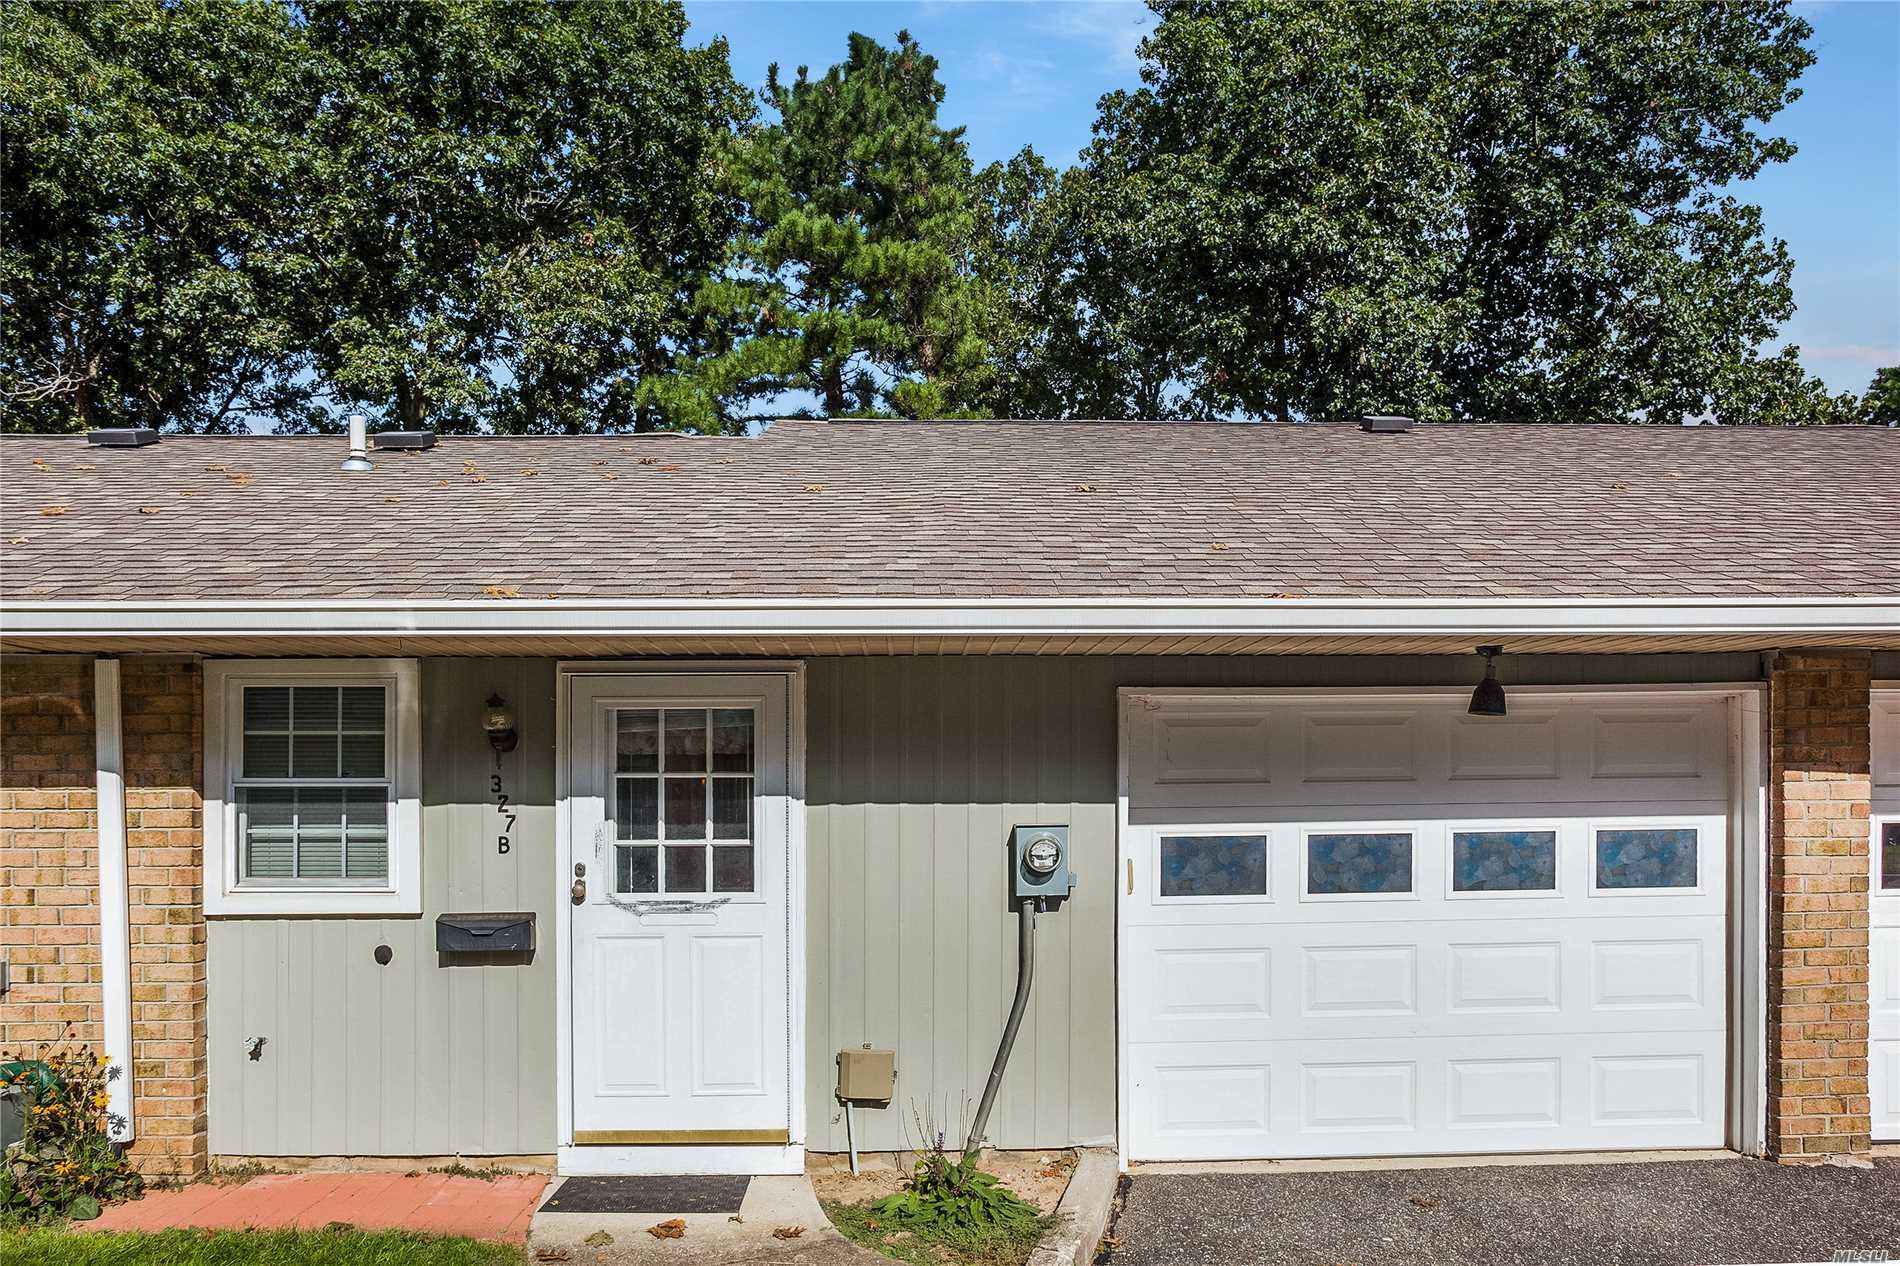 Photo of home for sale at 327 B Woodbridge Dr, Ridge NY